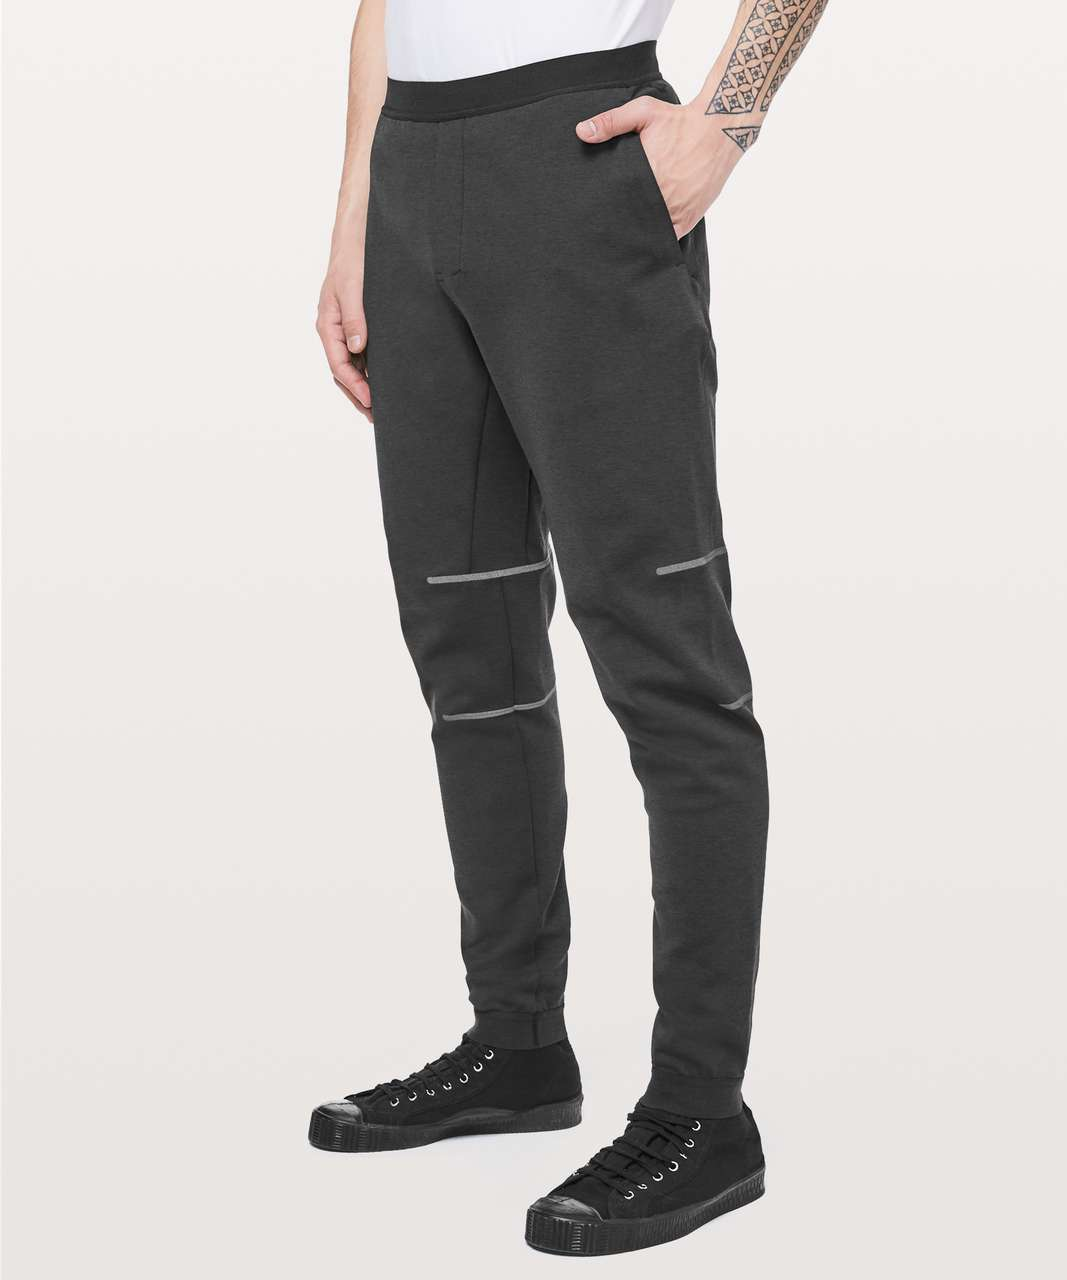 Lululemon Diffract Jogger *lululemon Lab - Deep Coal